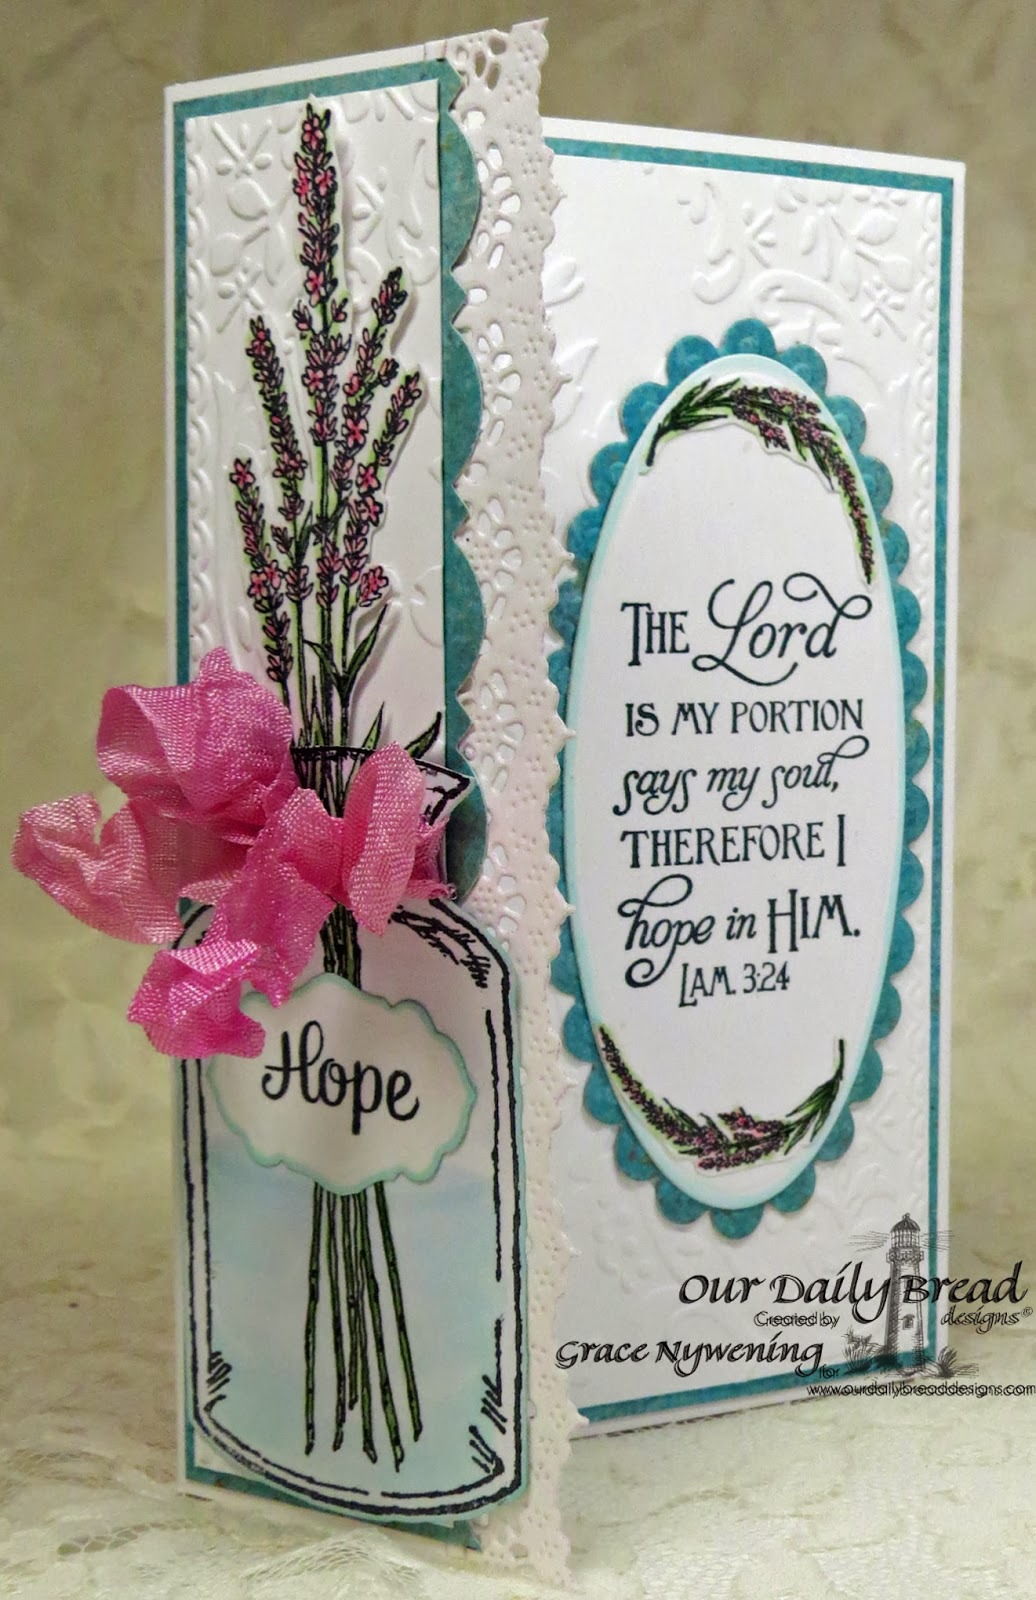 Our Daily Bread Designs, Lavender, Apothecary Bottles, Joy in a Jar, Scripture Collection 5, Grace Nywening